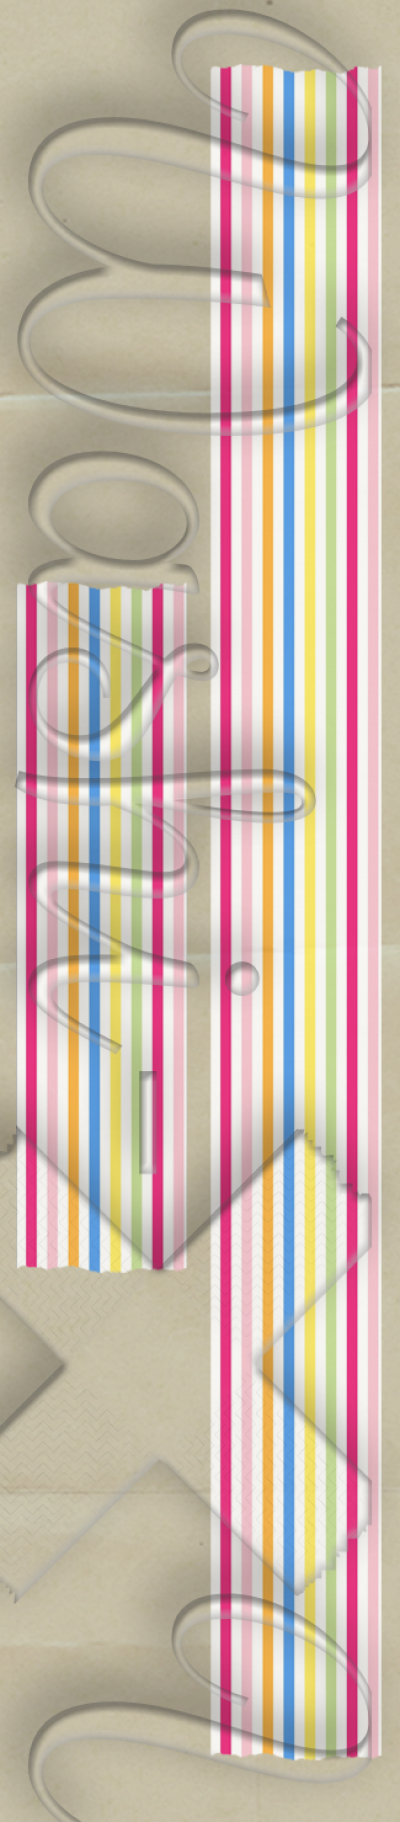 Lines patterned washi tape style 2